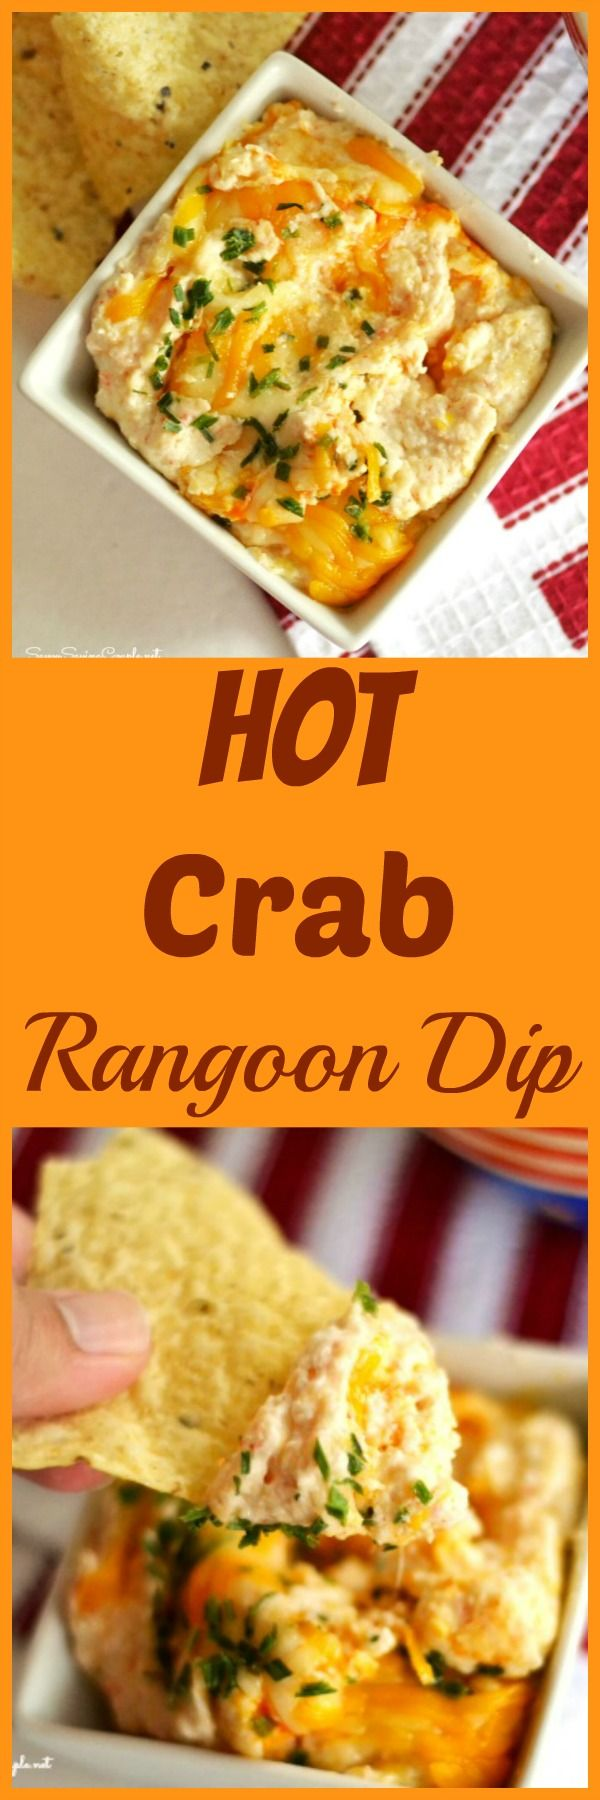 Hot Crab Rangoon Dip Recipe